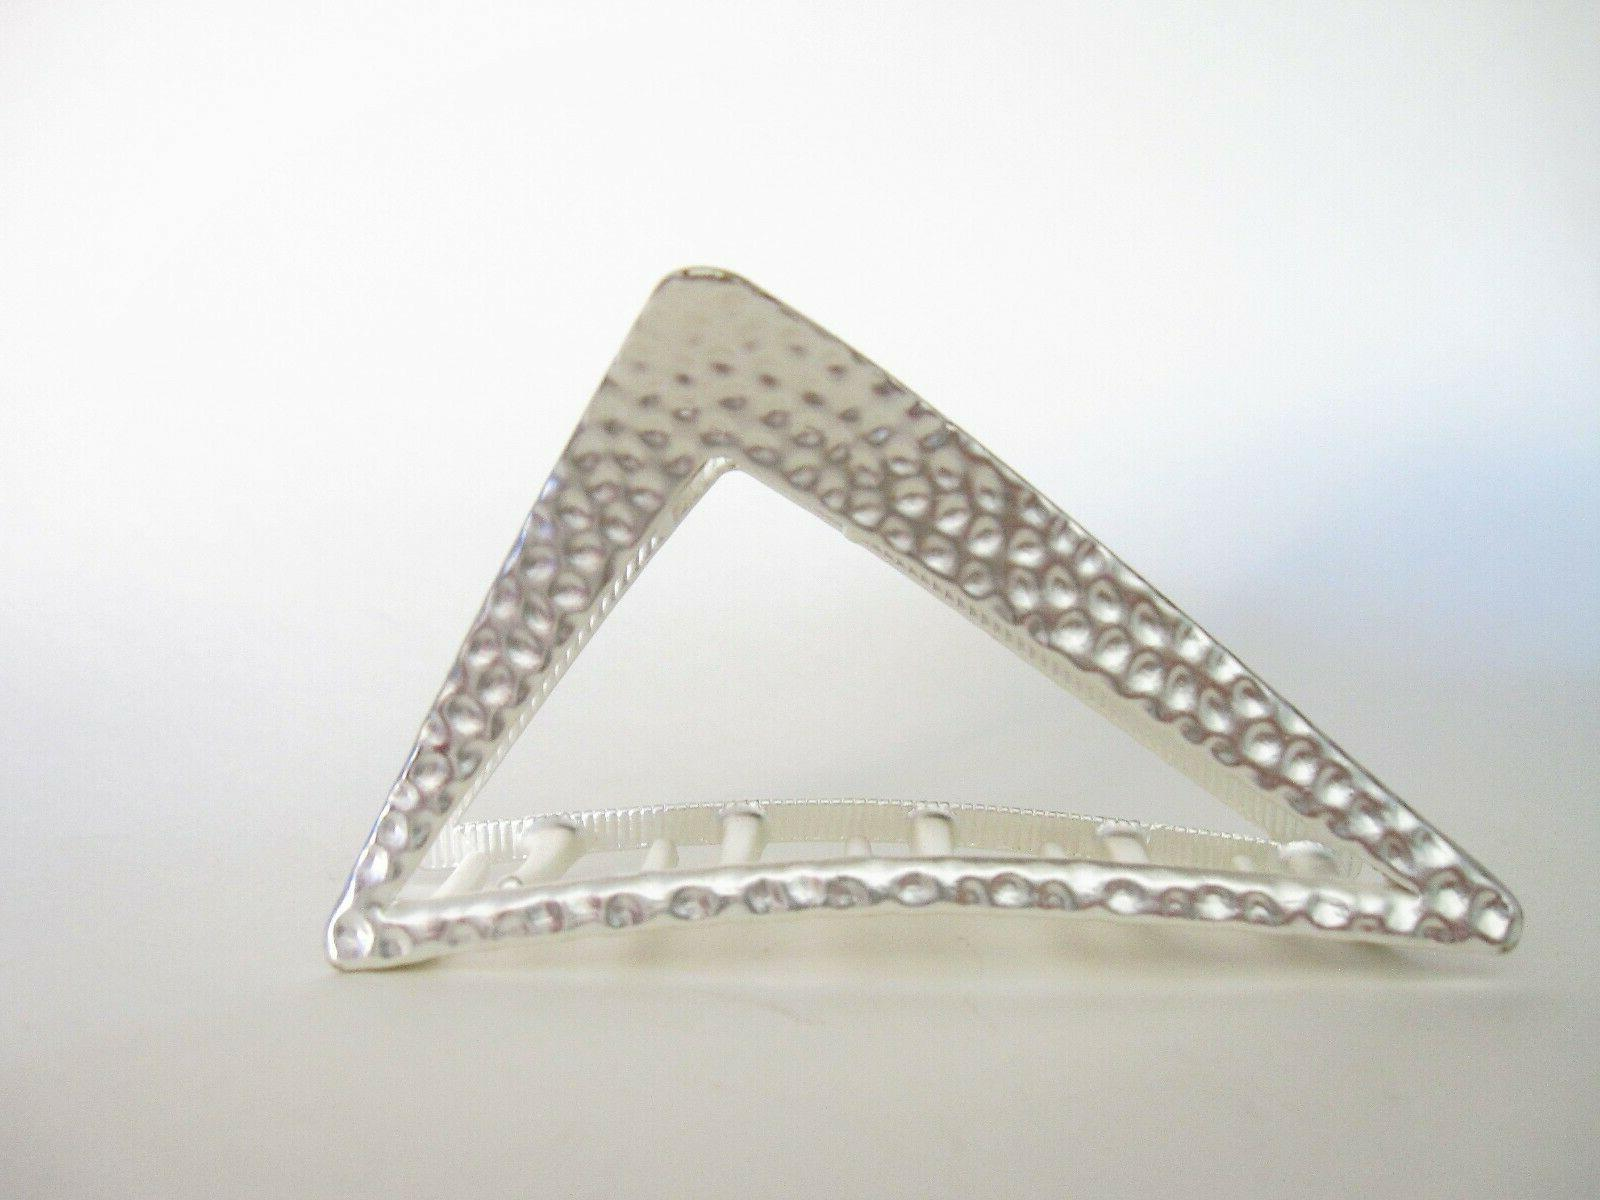 Matte silver textured triangle metal claw